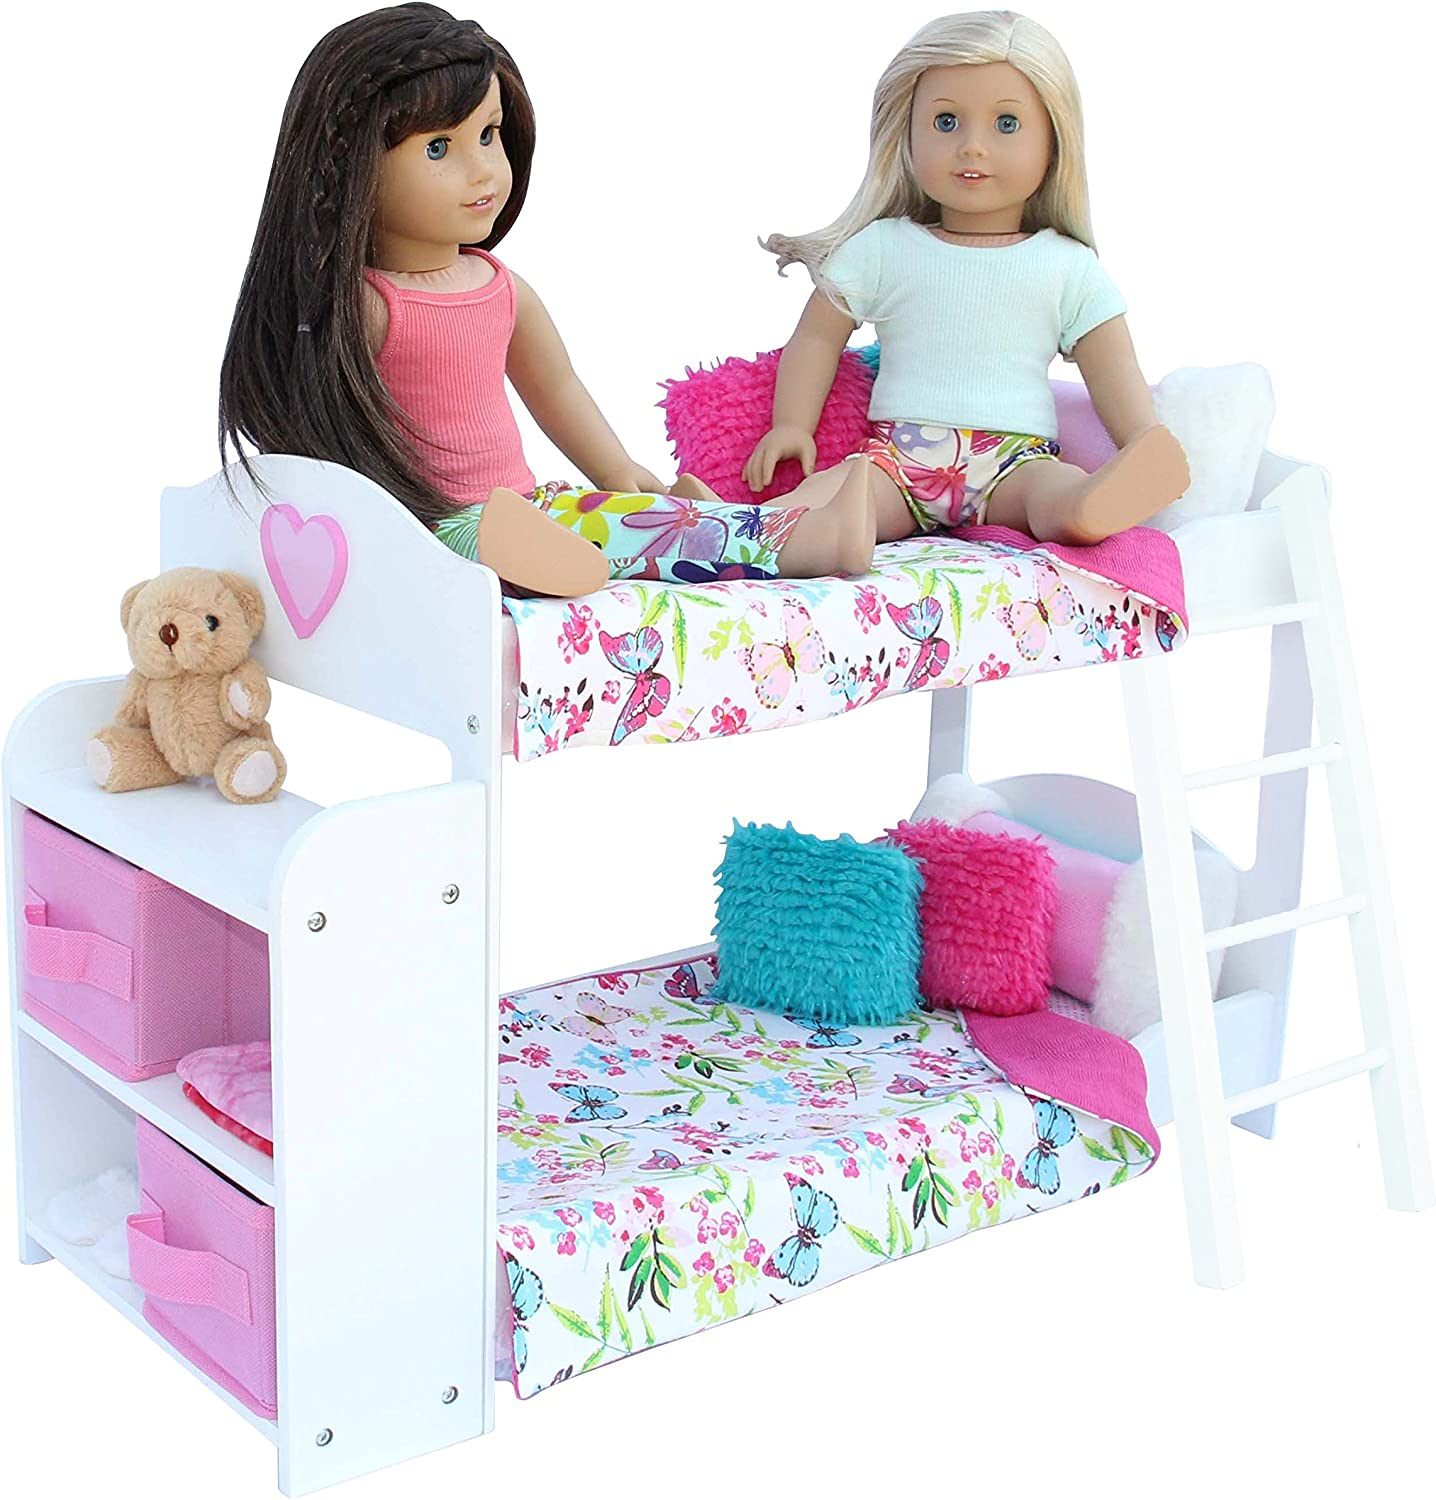 PZAS Toys Doll Bunk Bed - Doll Bunk Bed for 7 Inch Dolls Complete with  Linens, Pajamas, Teddy Bear, and Shelves, Compatible with American Girl  Doll